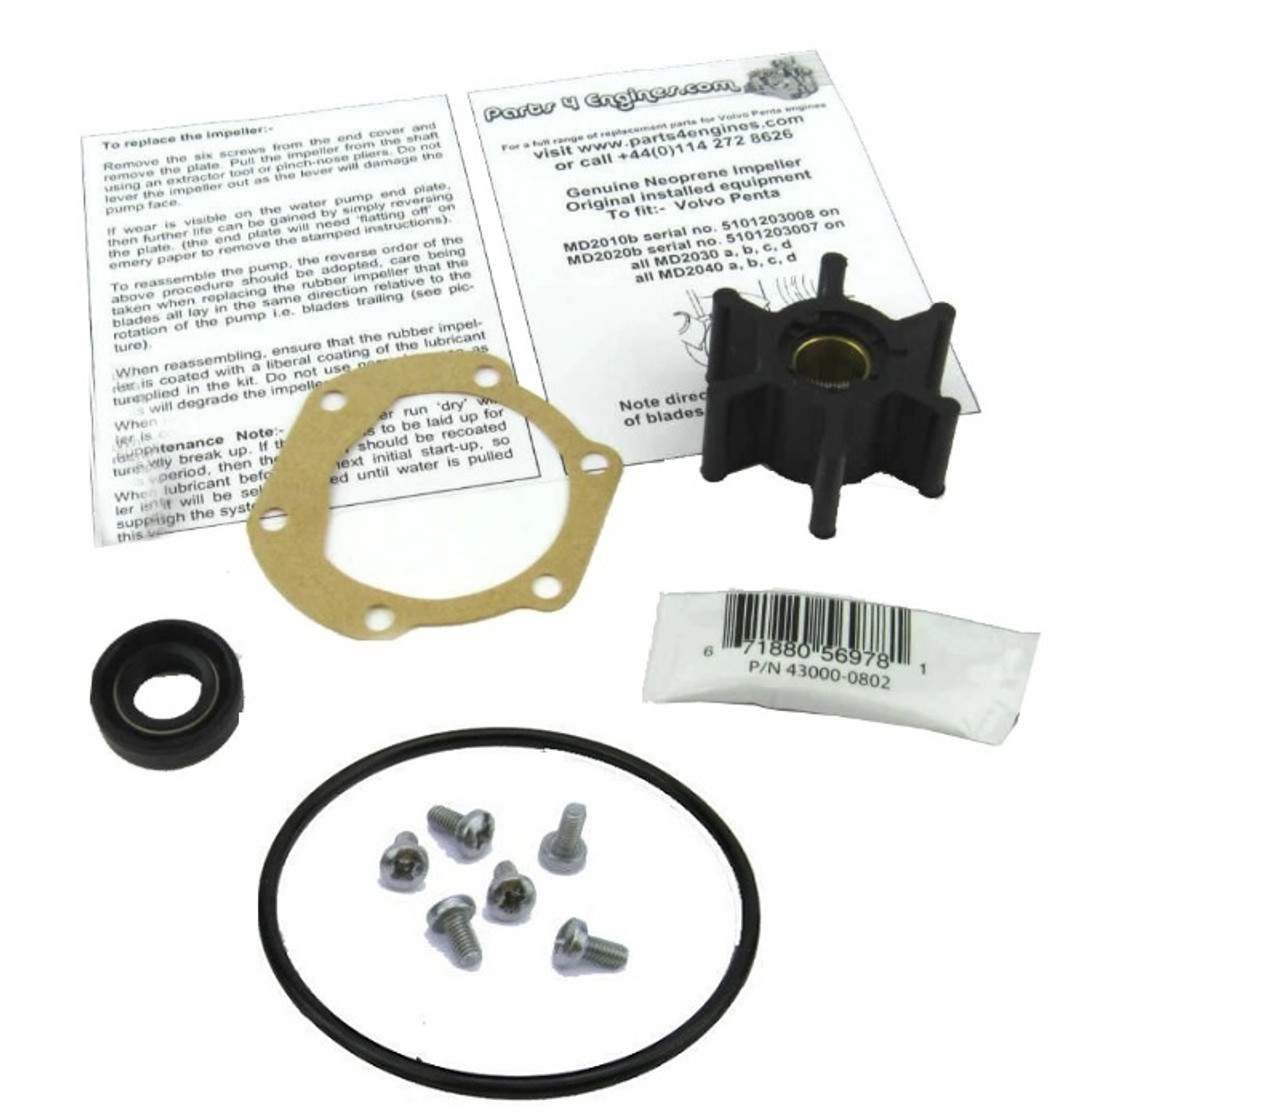 Volvo Penta D1-13 Raw water pump service kit from parts4engines.com